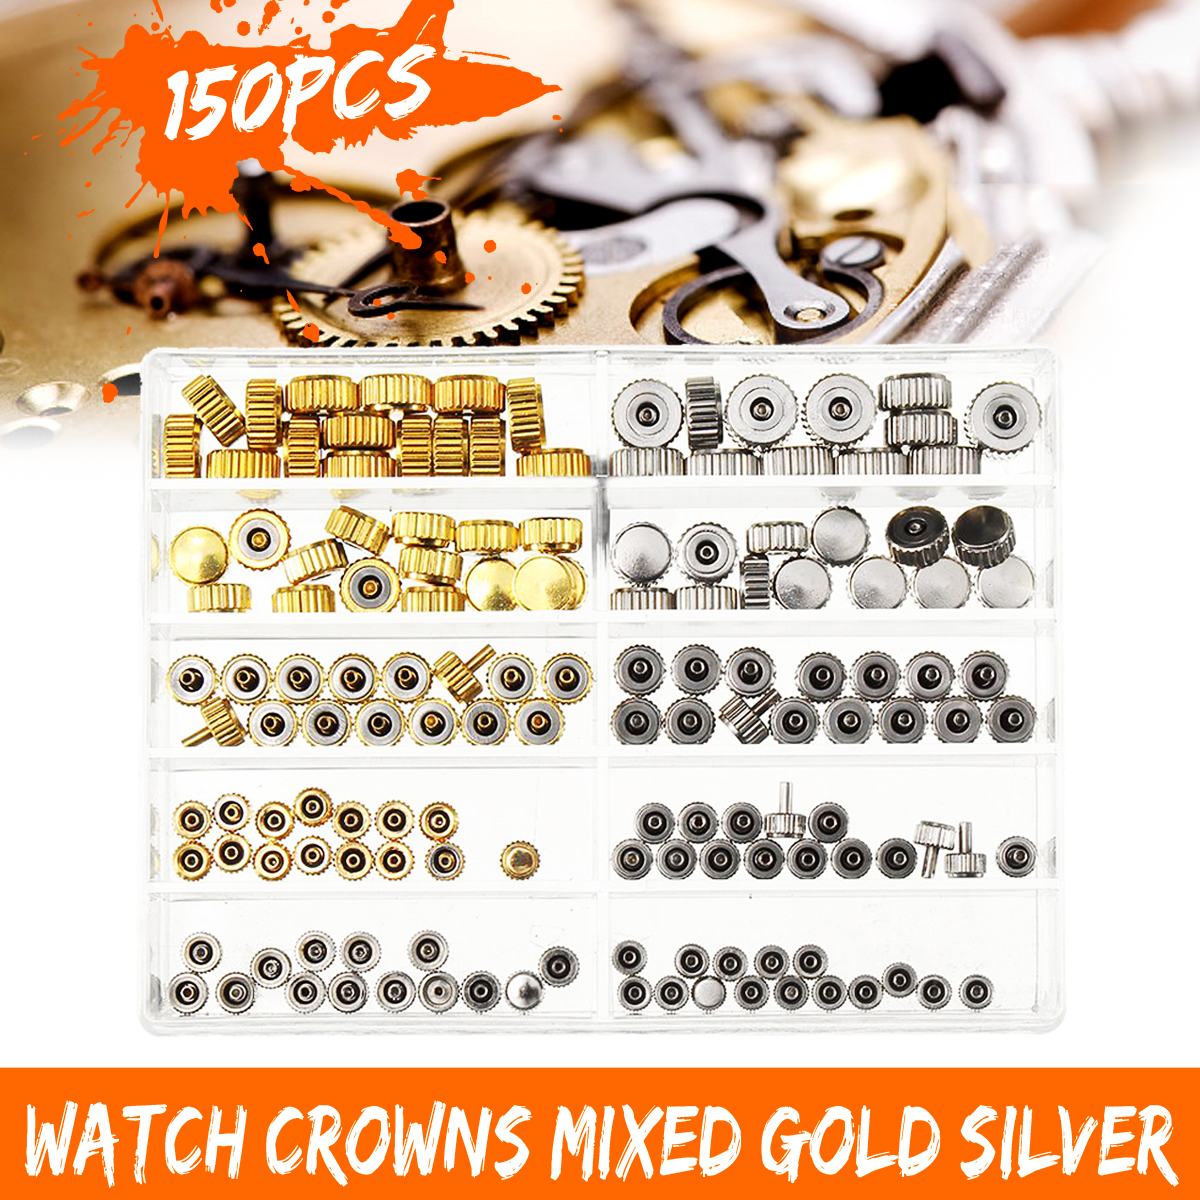 Cymii Watch Crown Parts Replacement Assorted Gold & Silver Dome Flat Head Watch Accessories Repair Tool Kit For WatchmakerCymii Watch Crown Parts Replacement Assorted Gold & Silver Dome Flat Head Watch Accessories Repair Tool Kit For Watchmaker